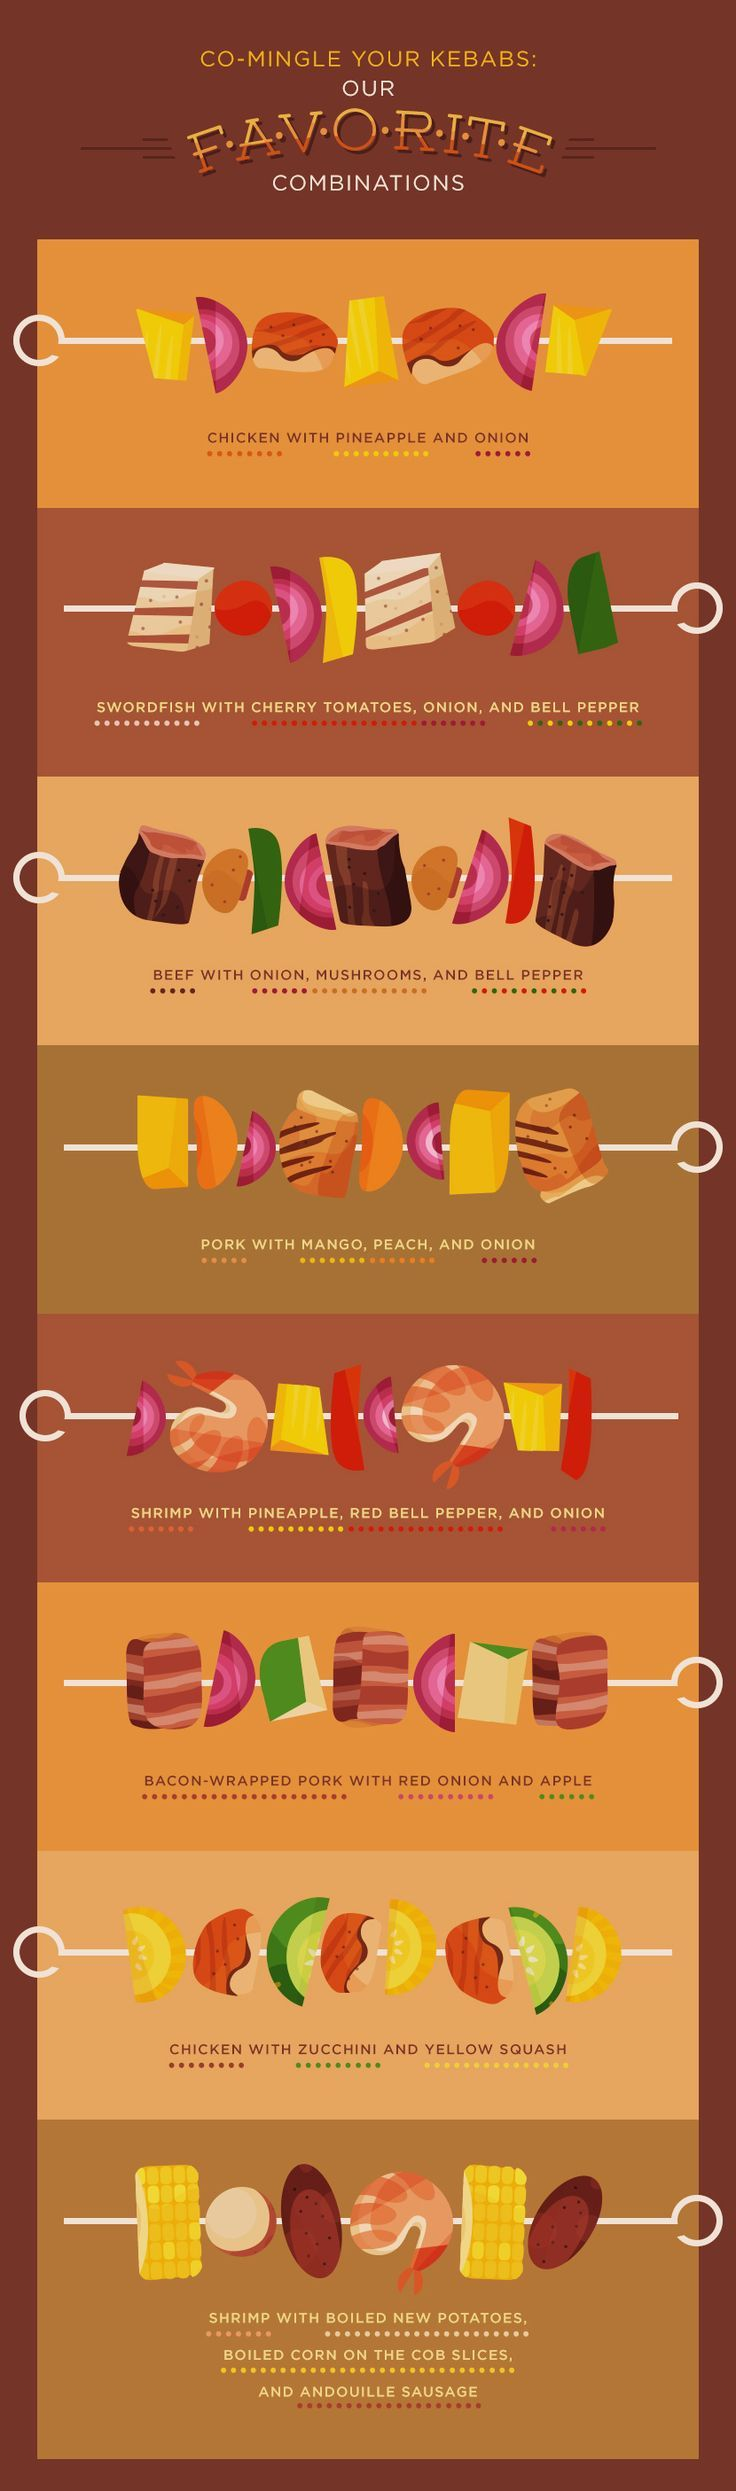 Grilling Perfect Kebabs - Different Kebab Combinations